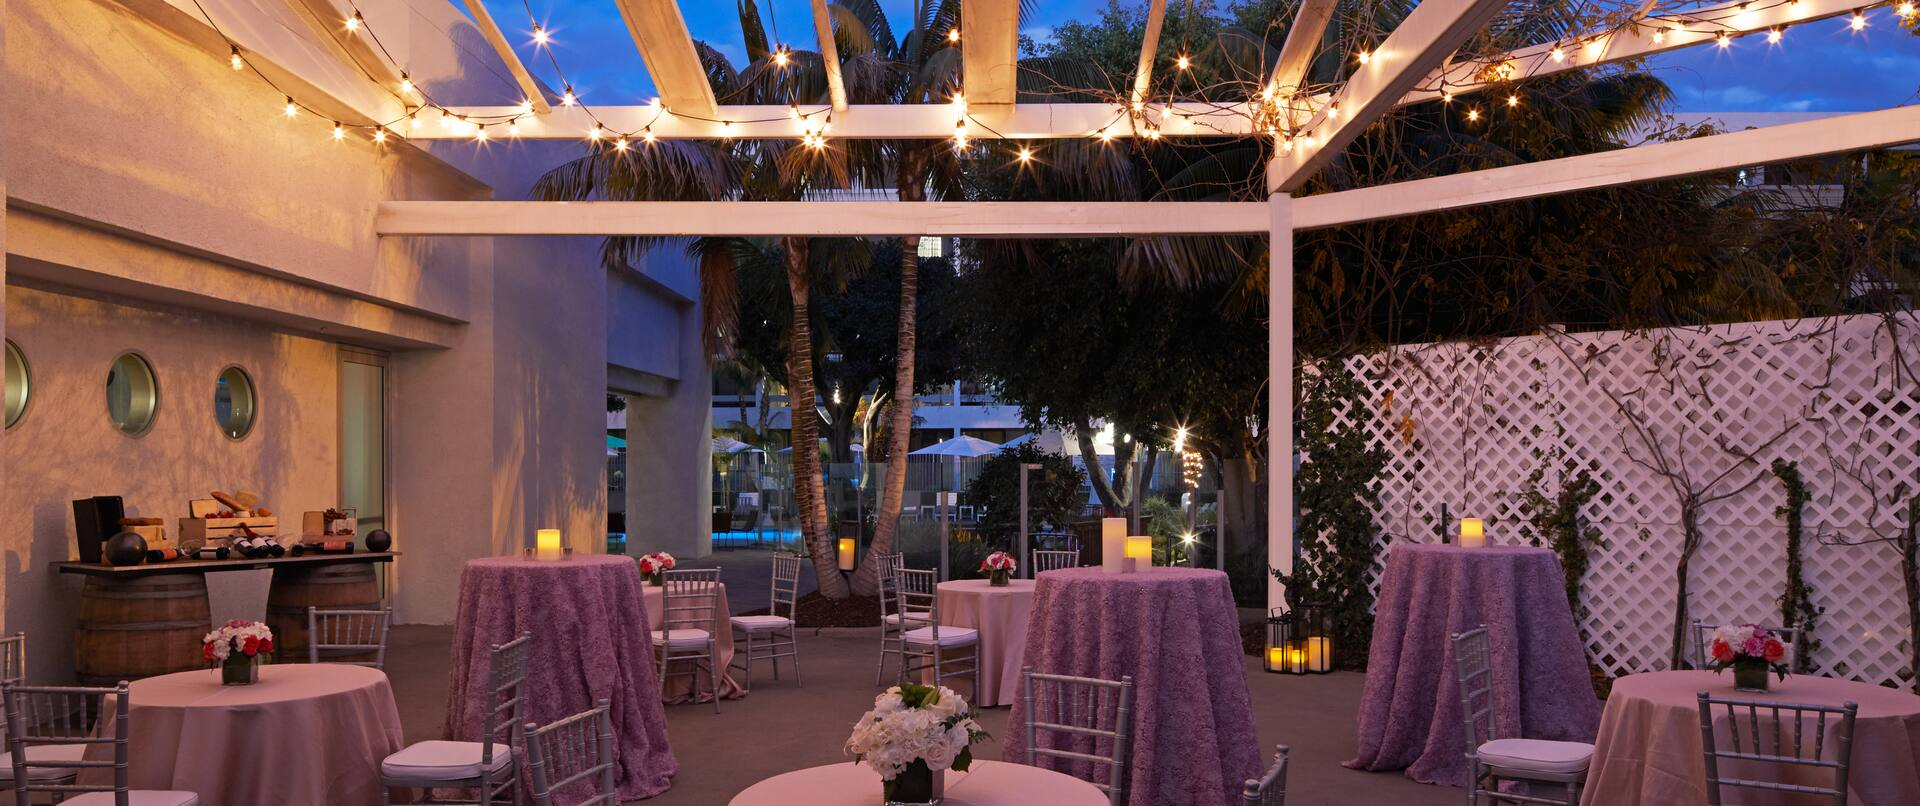 Event Space with Seating